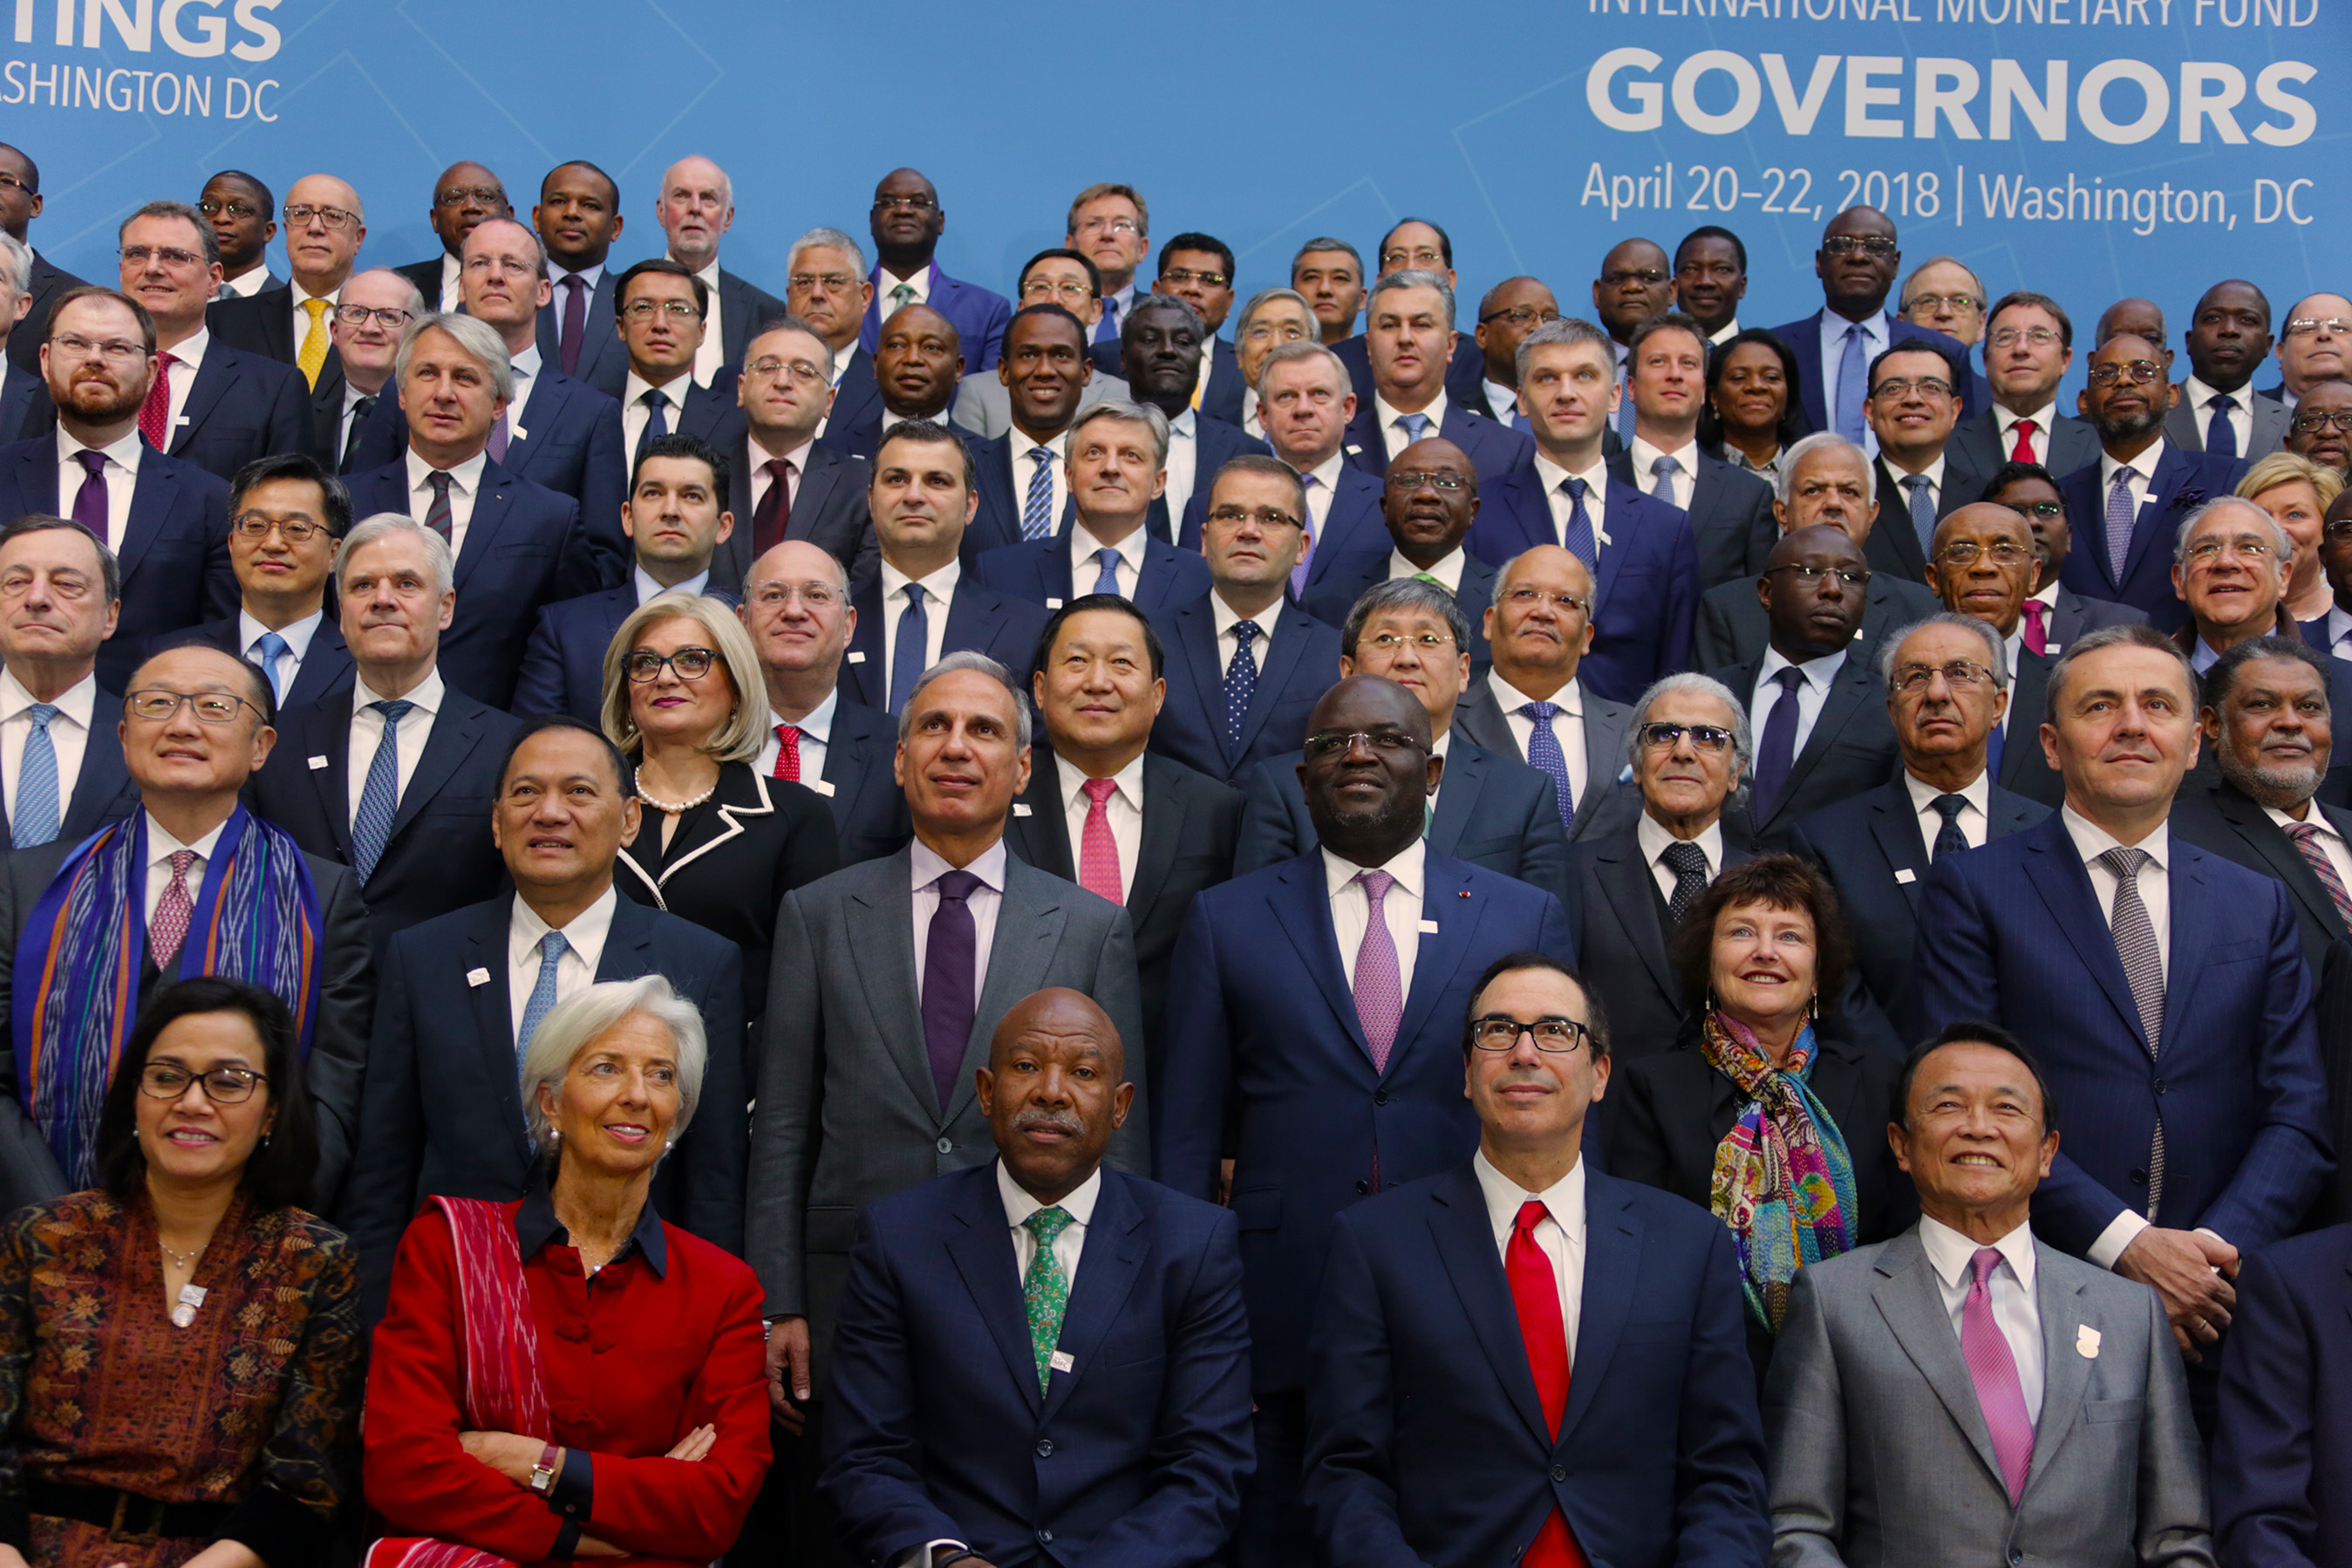 The Day in Pictures: Adeosun, Emefiele at the IMF/World Bank Spring Meeting